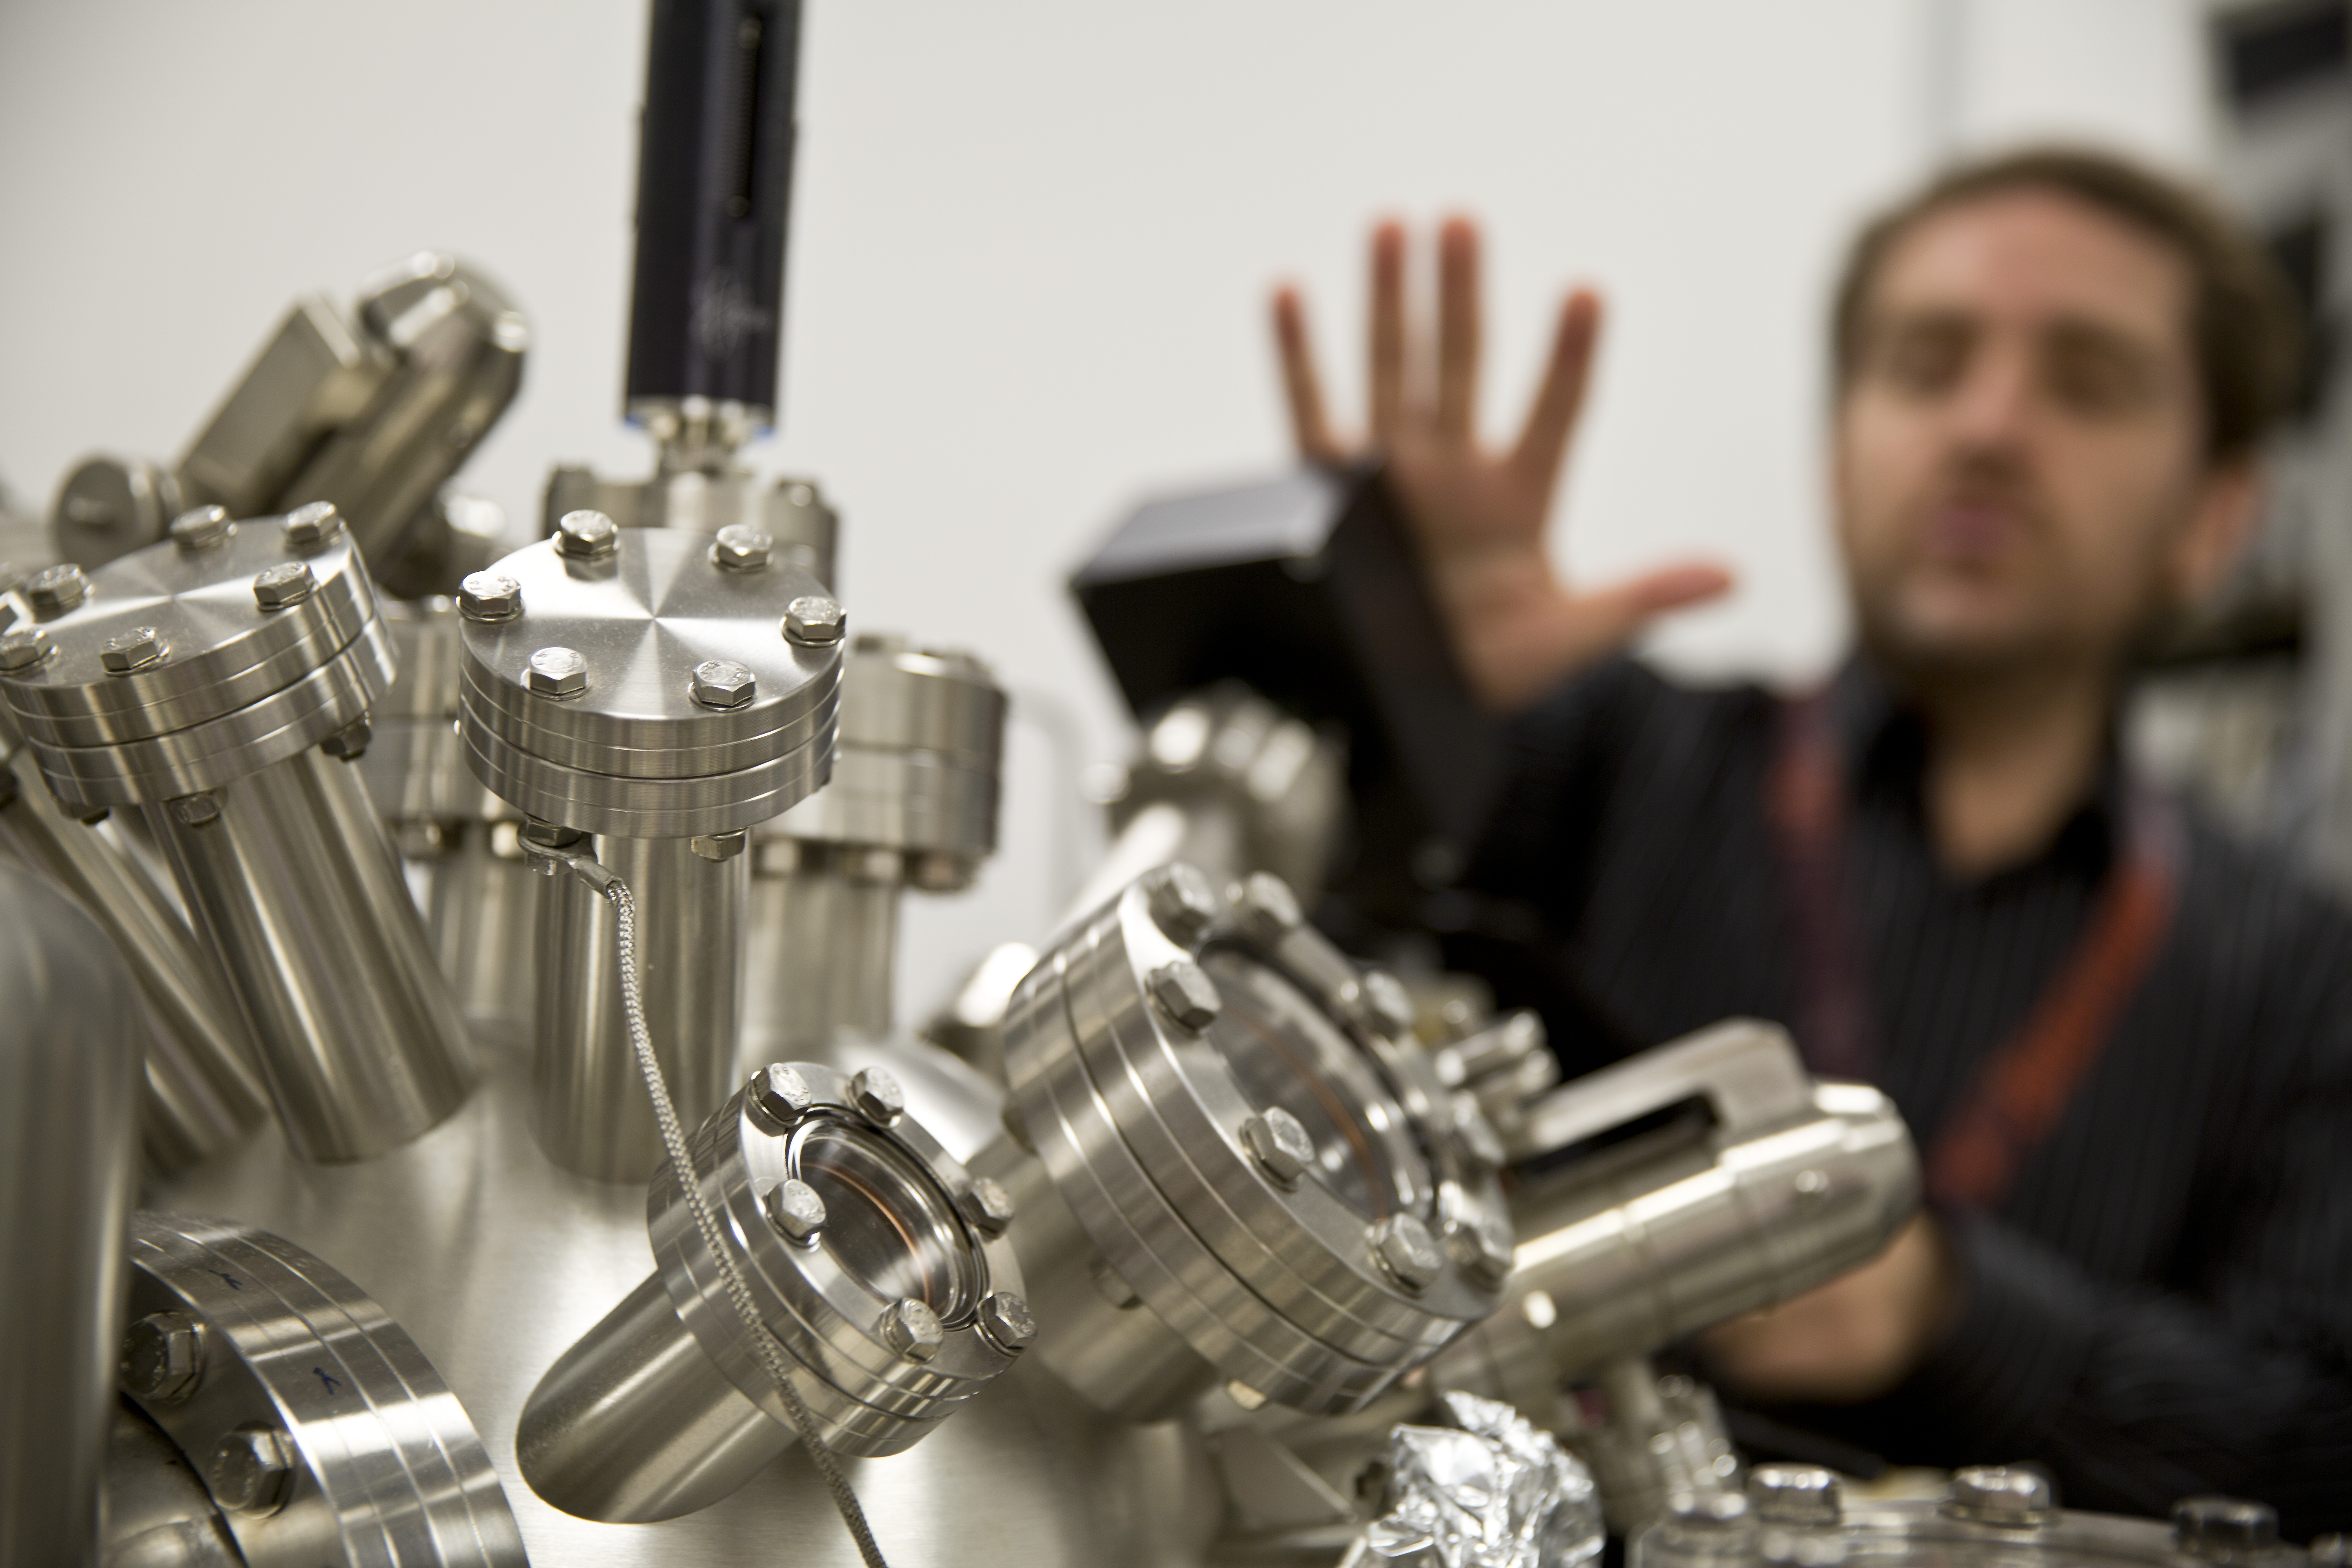 A researcher sets up one of the Singh Center's atomic force microscopes. (Photo: Steve Minicola)